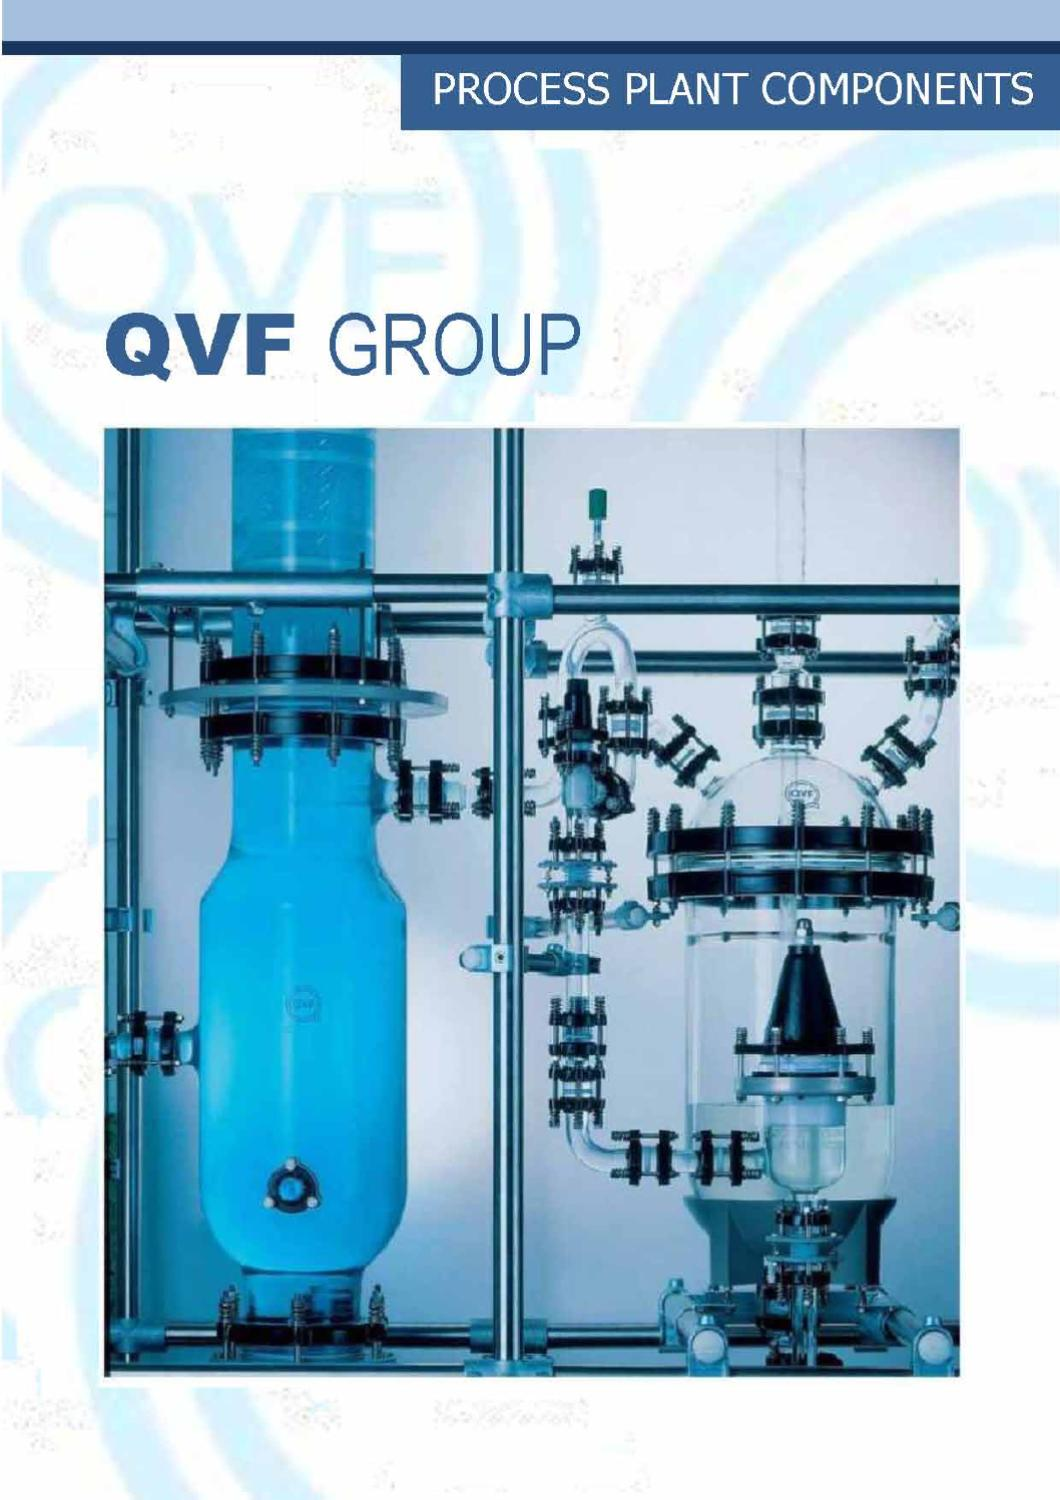 QVF Components Catalogue by Chemlab International - issuu